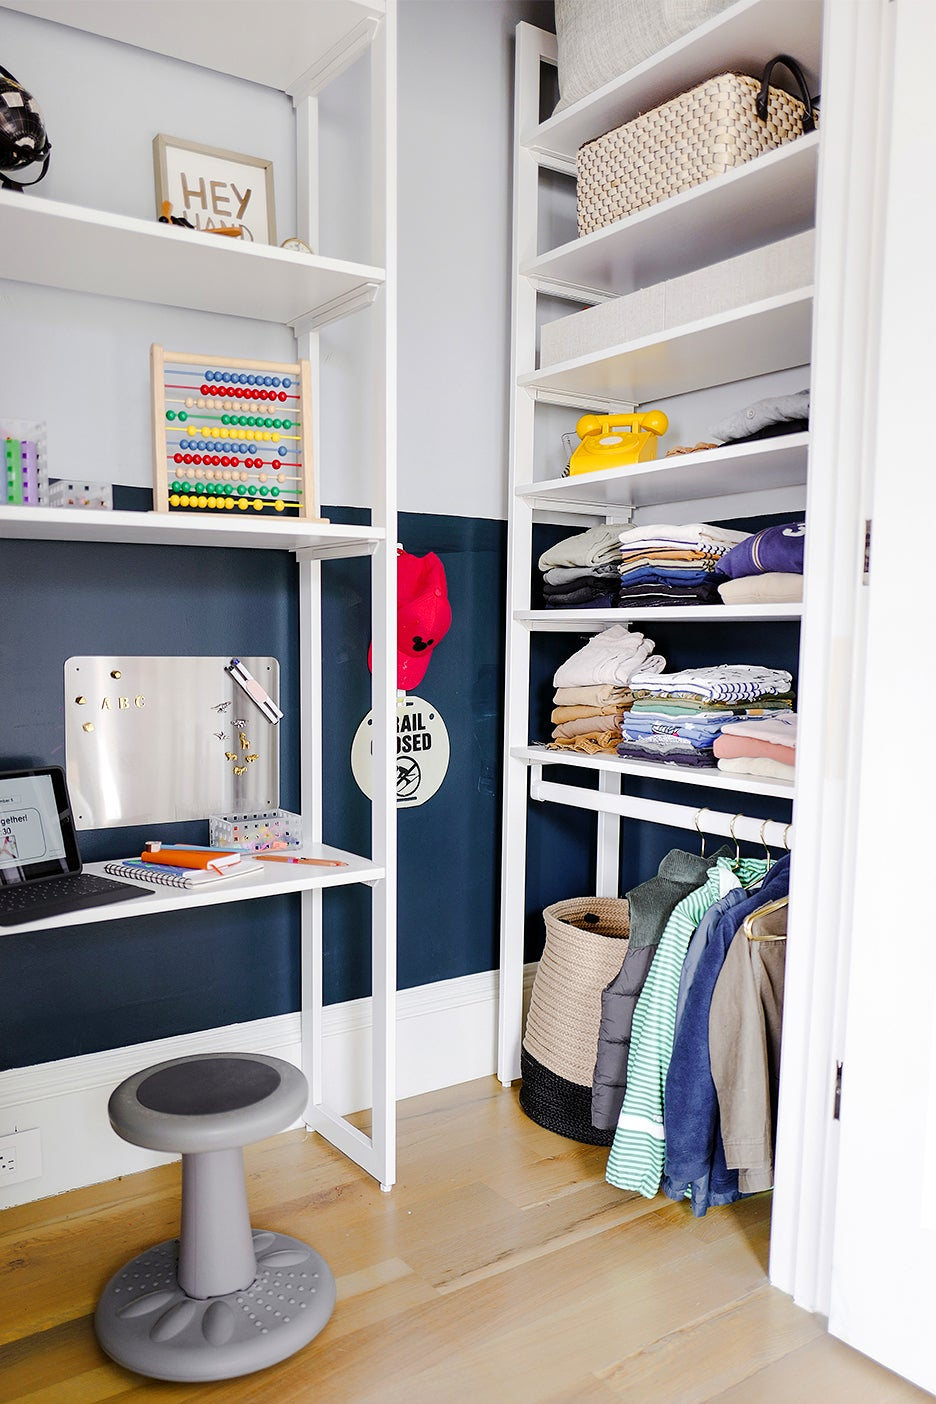 tall shelving units in a closet